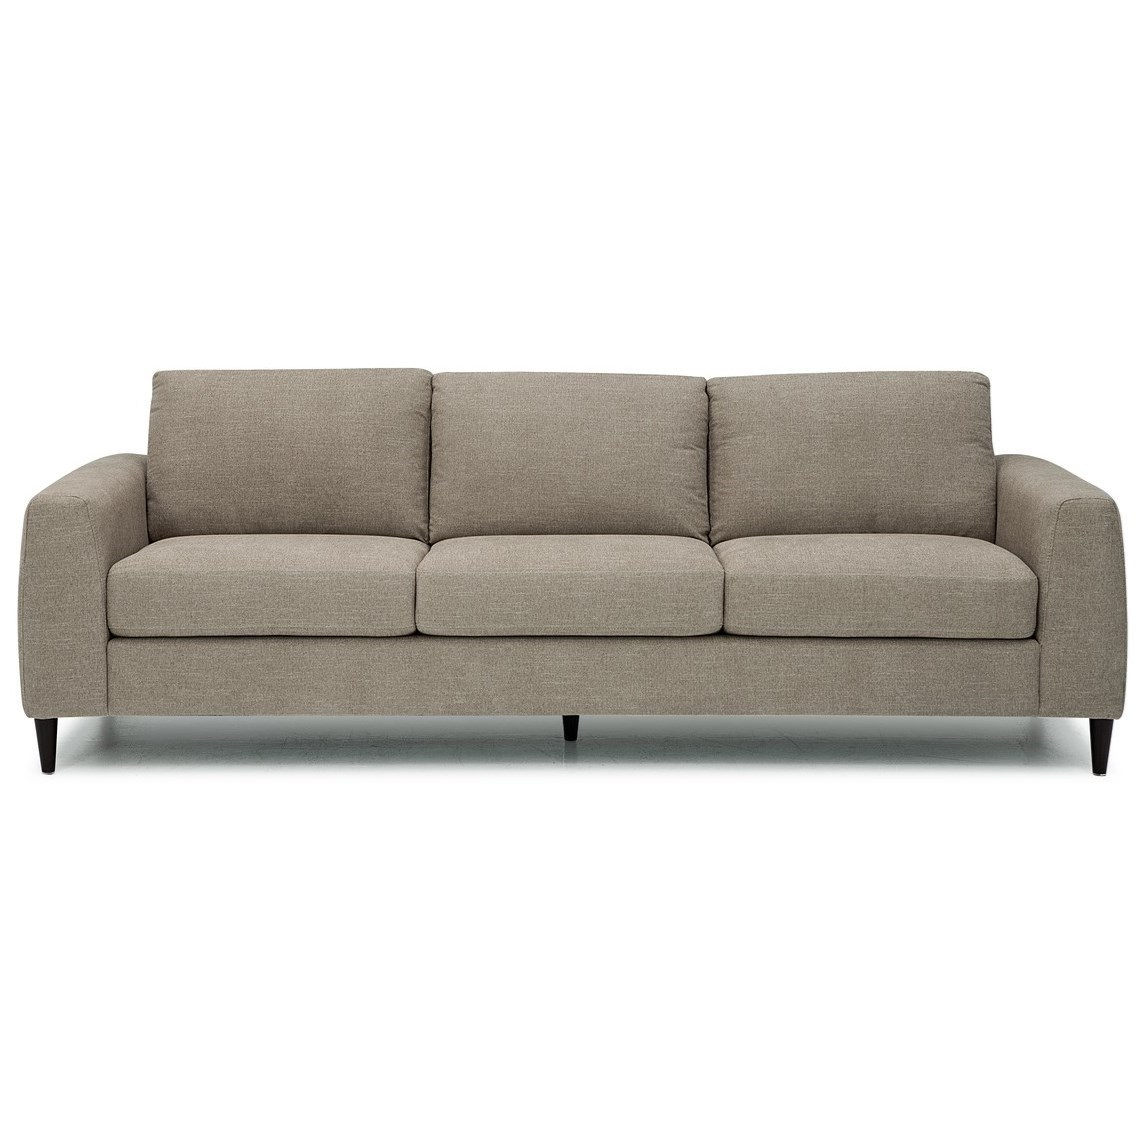 Atticus Sofa by Palliser at Esprit Decor Home Furnishings